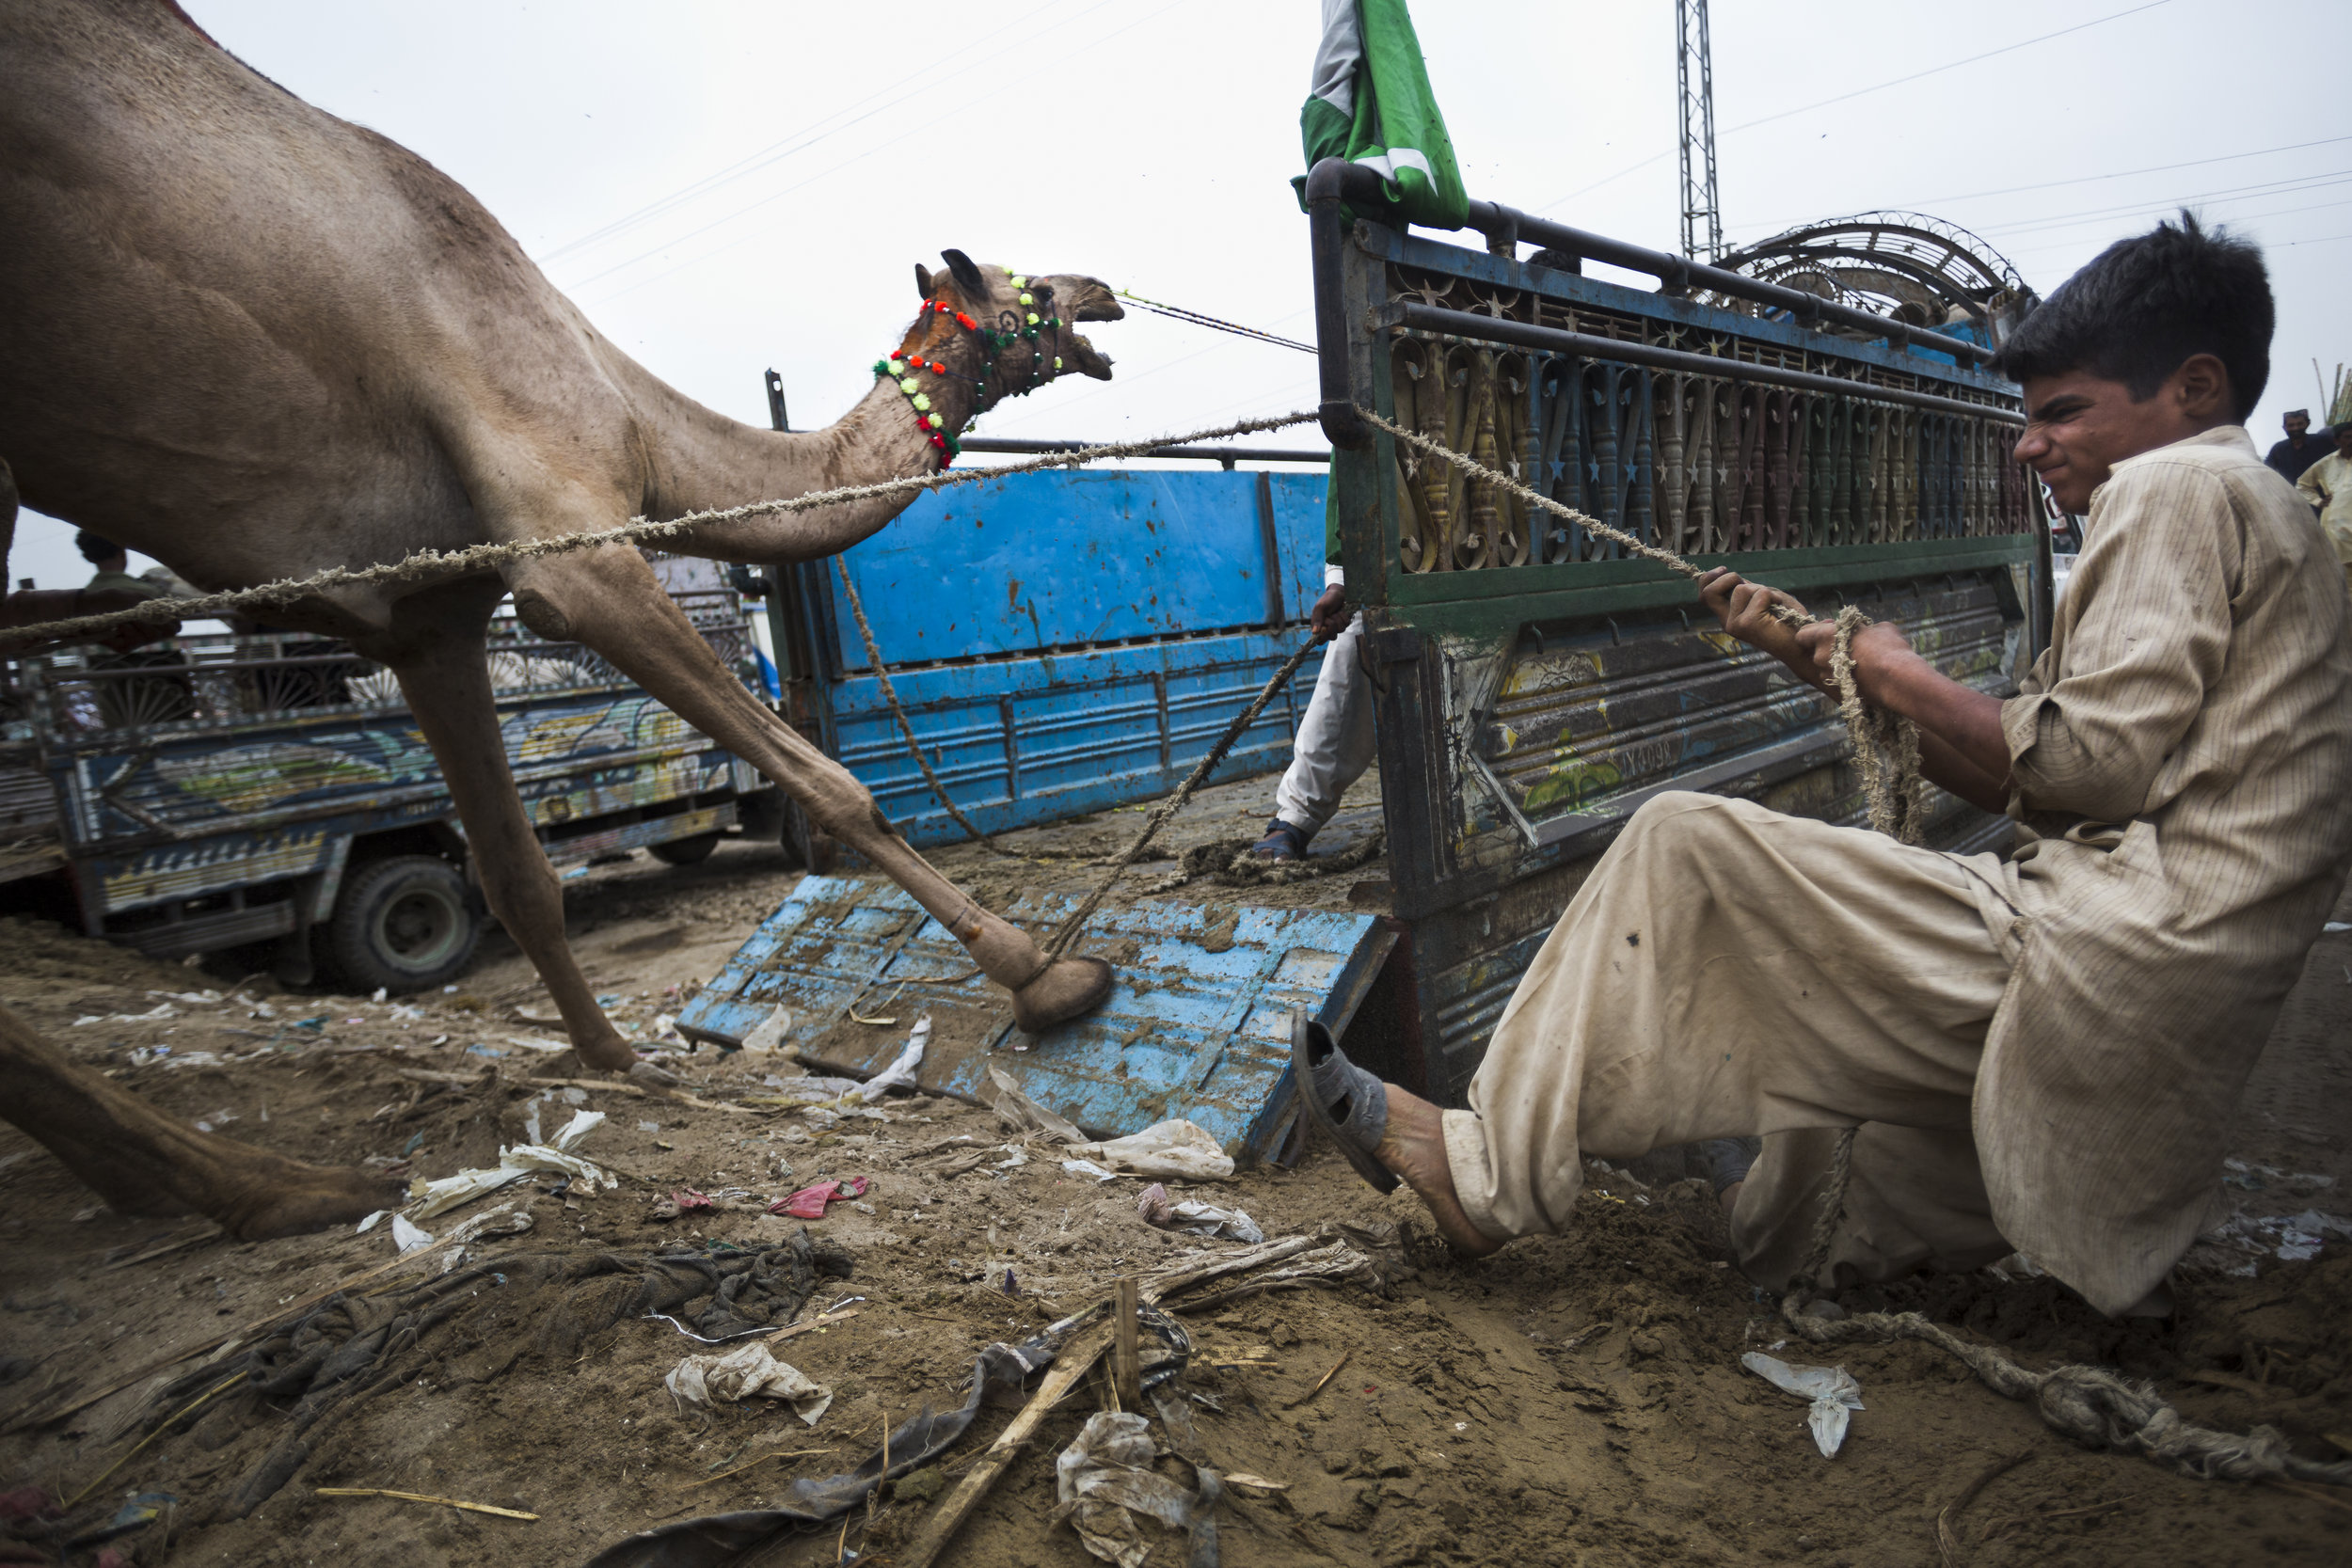 A boy wrangles a camel at a 'mandi,' in Karachi, Pakistan on Friday Aug 9, 2019. Mandis are pop up animal markets where customers browse and purchase goats, sheep, cows, or camels for sacrificial slaughter for the Muslim celebration Eid al-Adha. Much of meat is often distributed to impoverished families. This ritual sacrifice originates from the sacrificial story of Abraham and his son Ishmael.